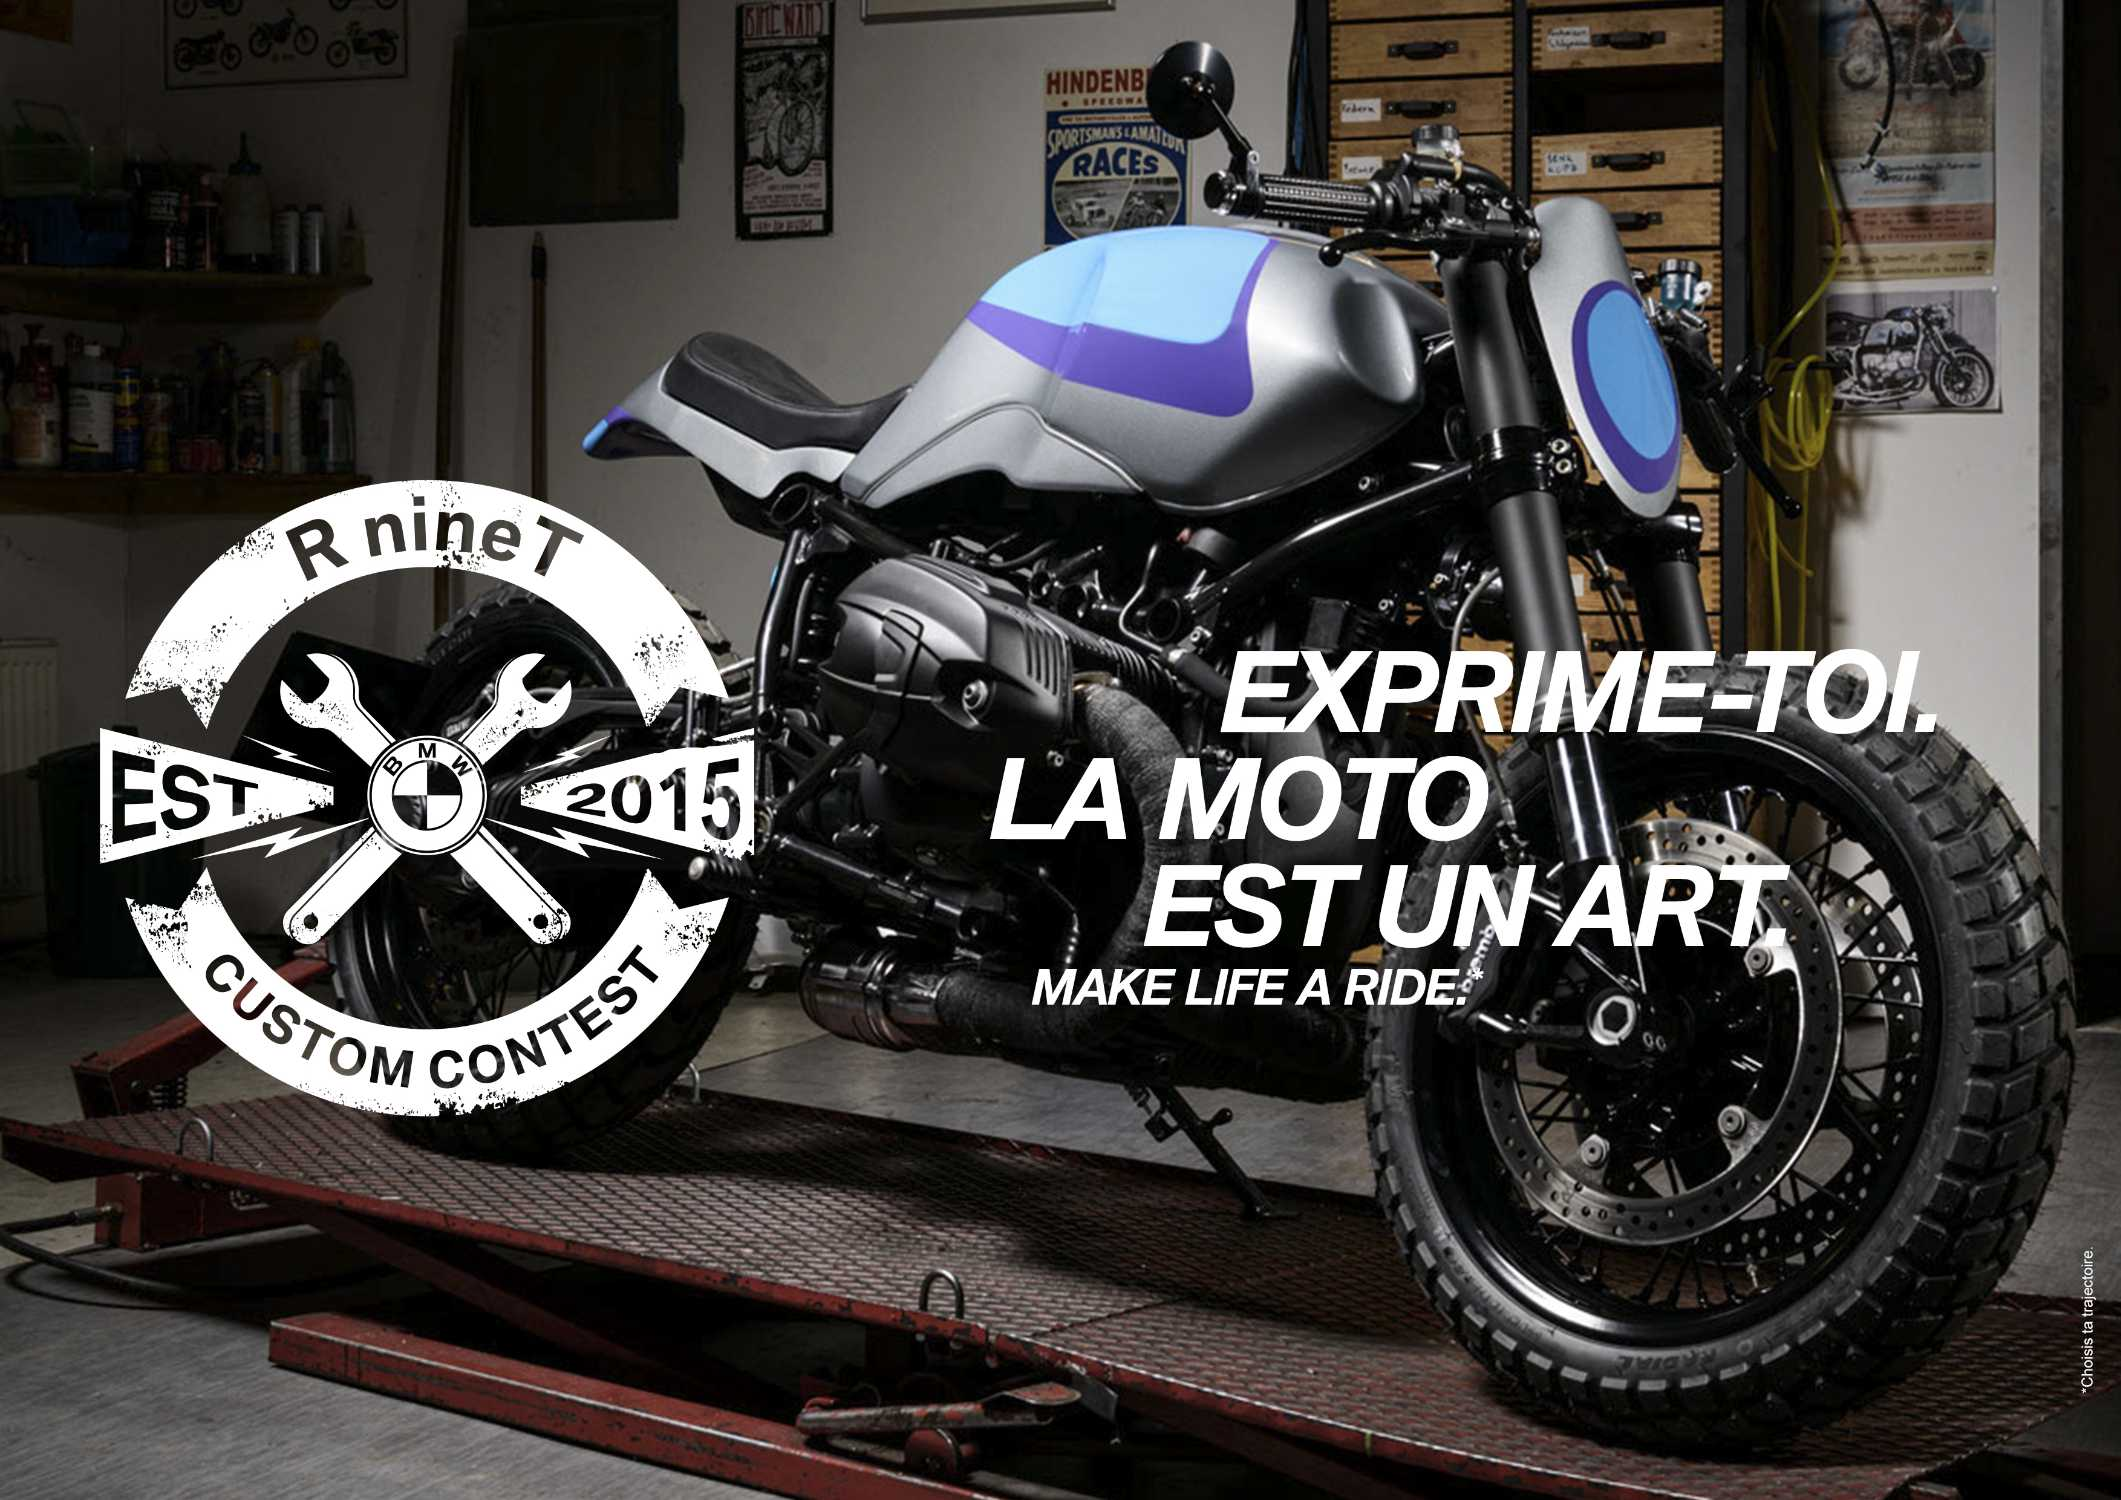 bmw motorrad france lance le r ninet custom contest. Black Bedroom Furniture Sets. Home Design Ideas